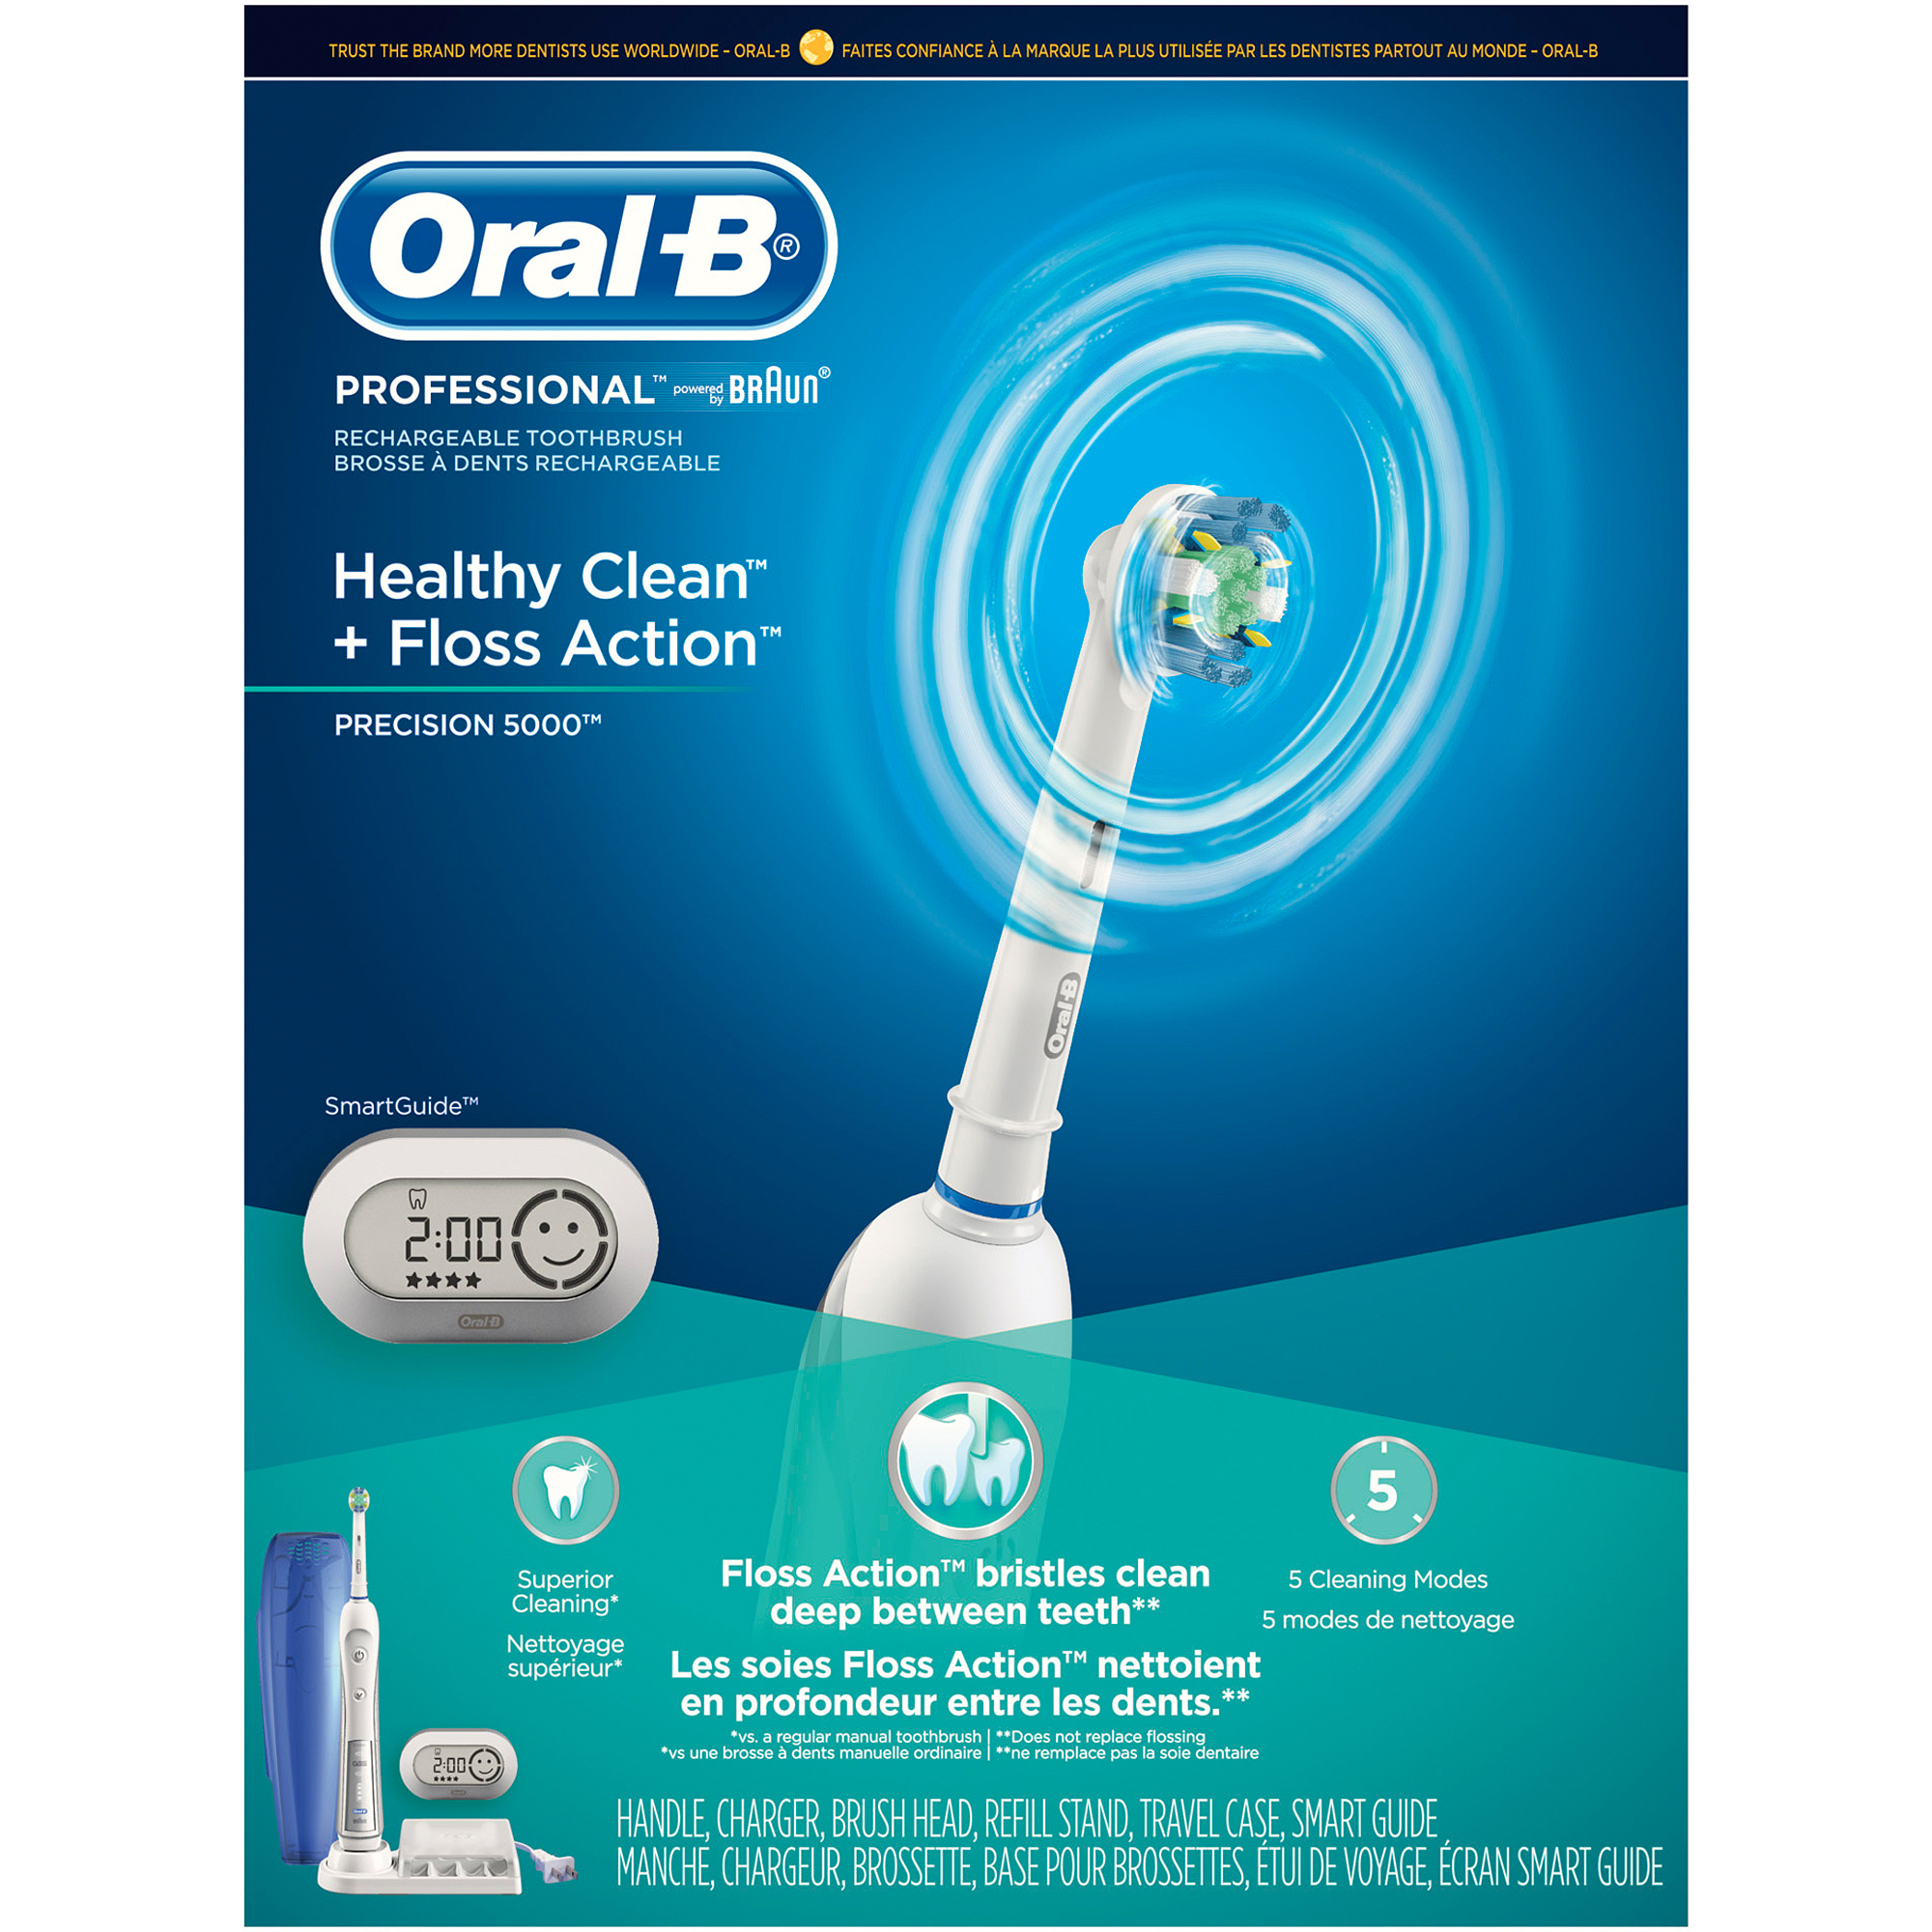 Oral-B ProfessionalCare SmartSeries 5000 Electric Toothbrush with SmartGuide